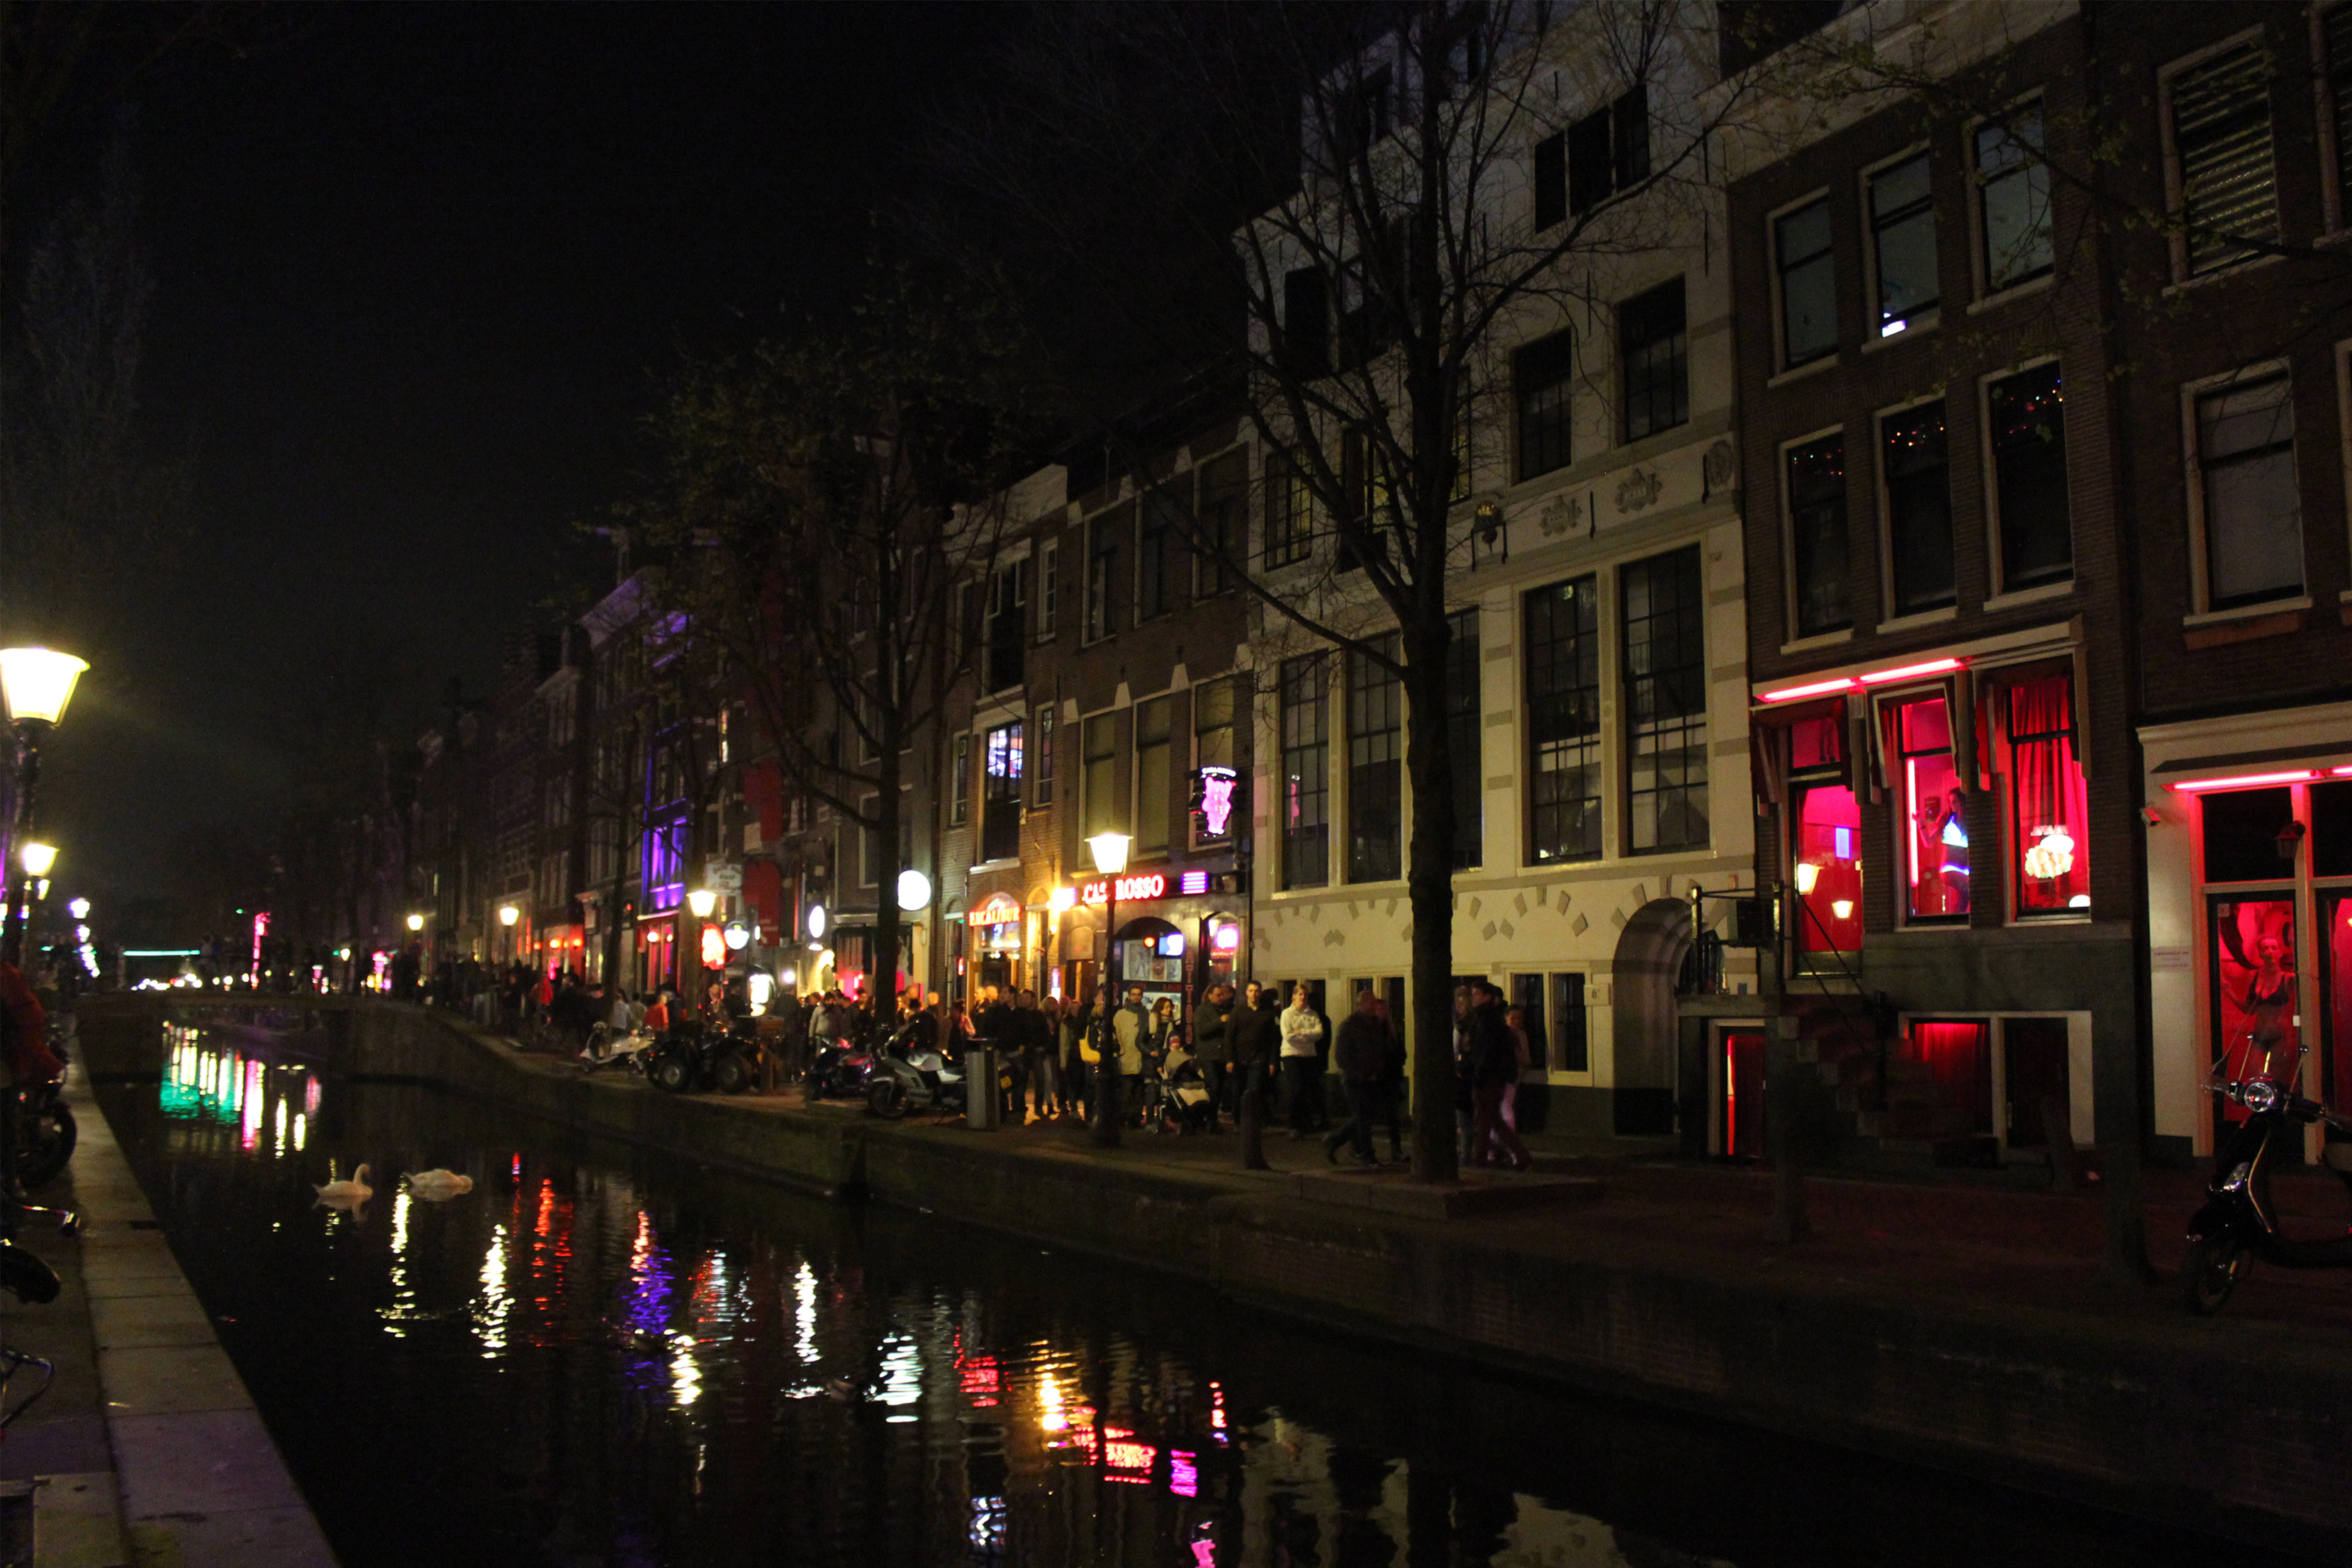 Red Light District Selene Abroad